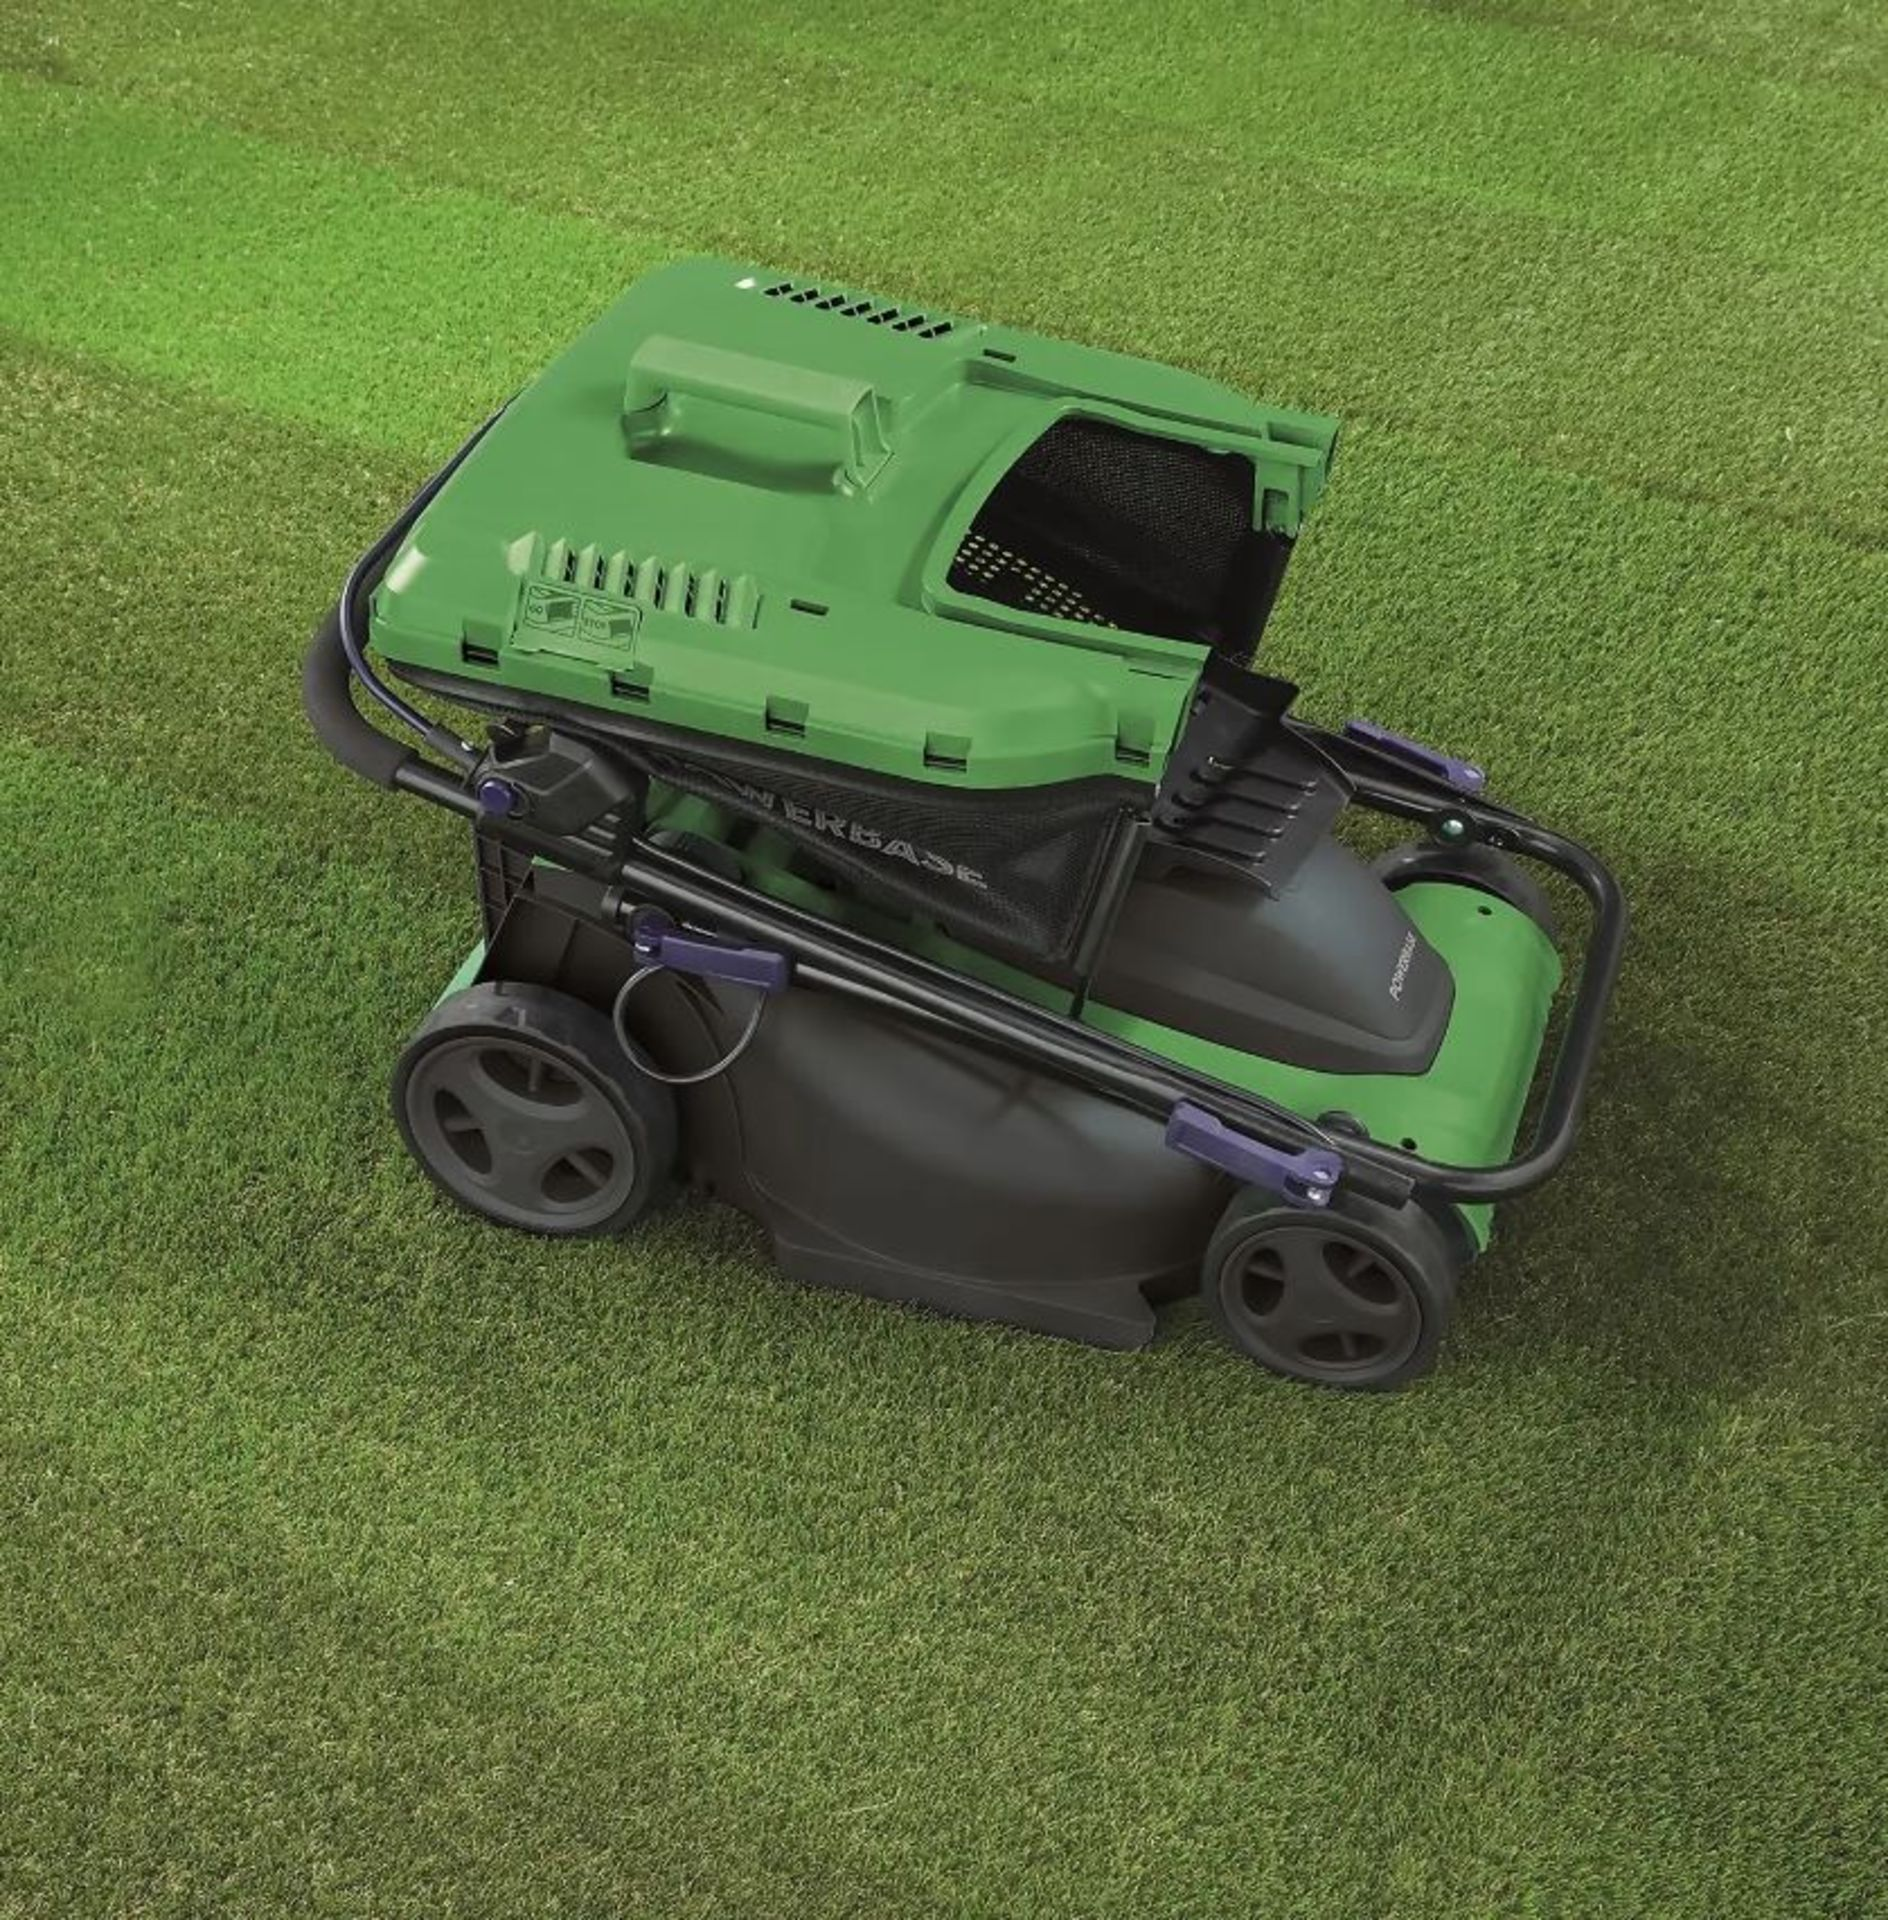 (P2) 2x Powerbase 37cm 1600W Electric Rotary Lawn Mower. RRP £99.00. - Image 2 of 3